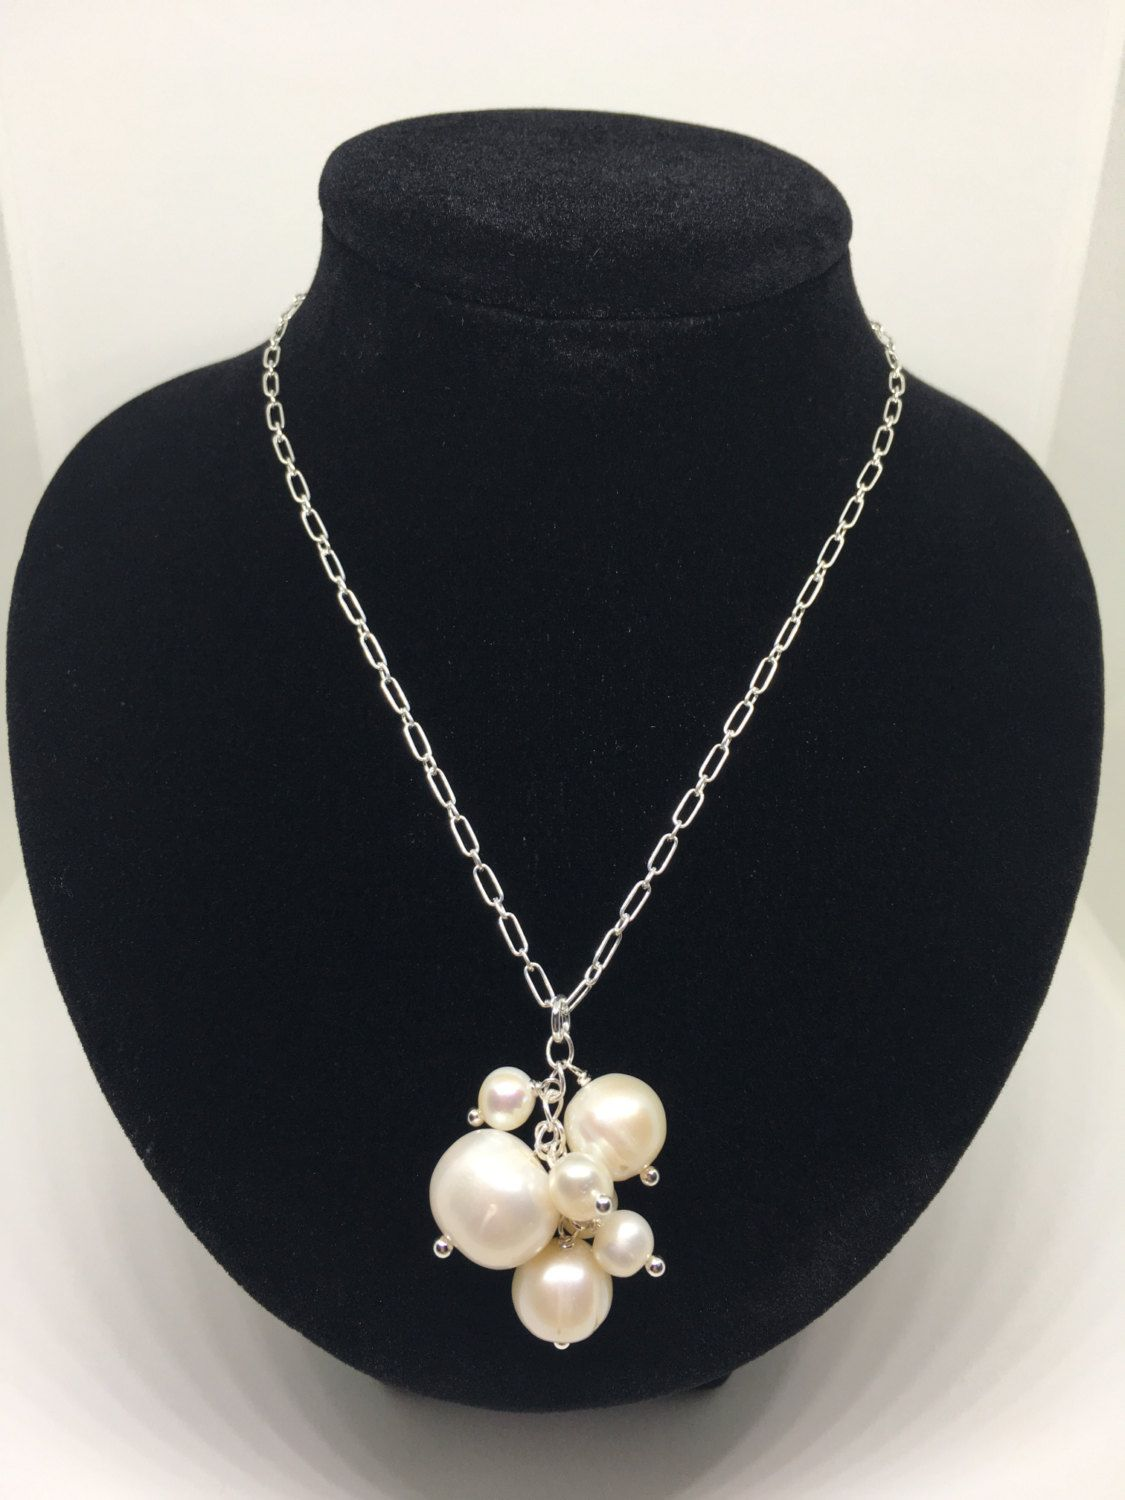 Pearl Necklace Sterling Silver Bridal Wedding June Etsy